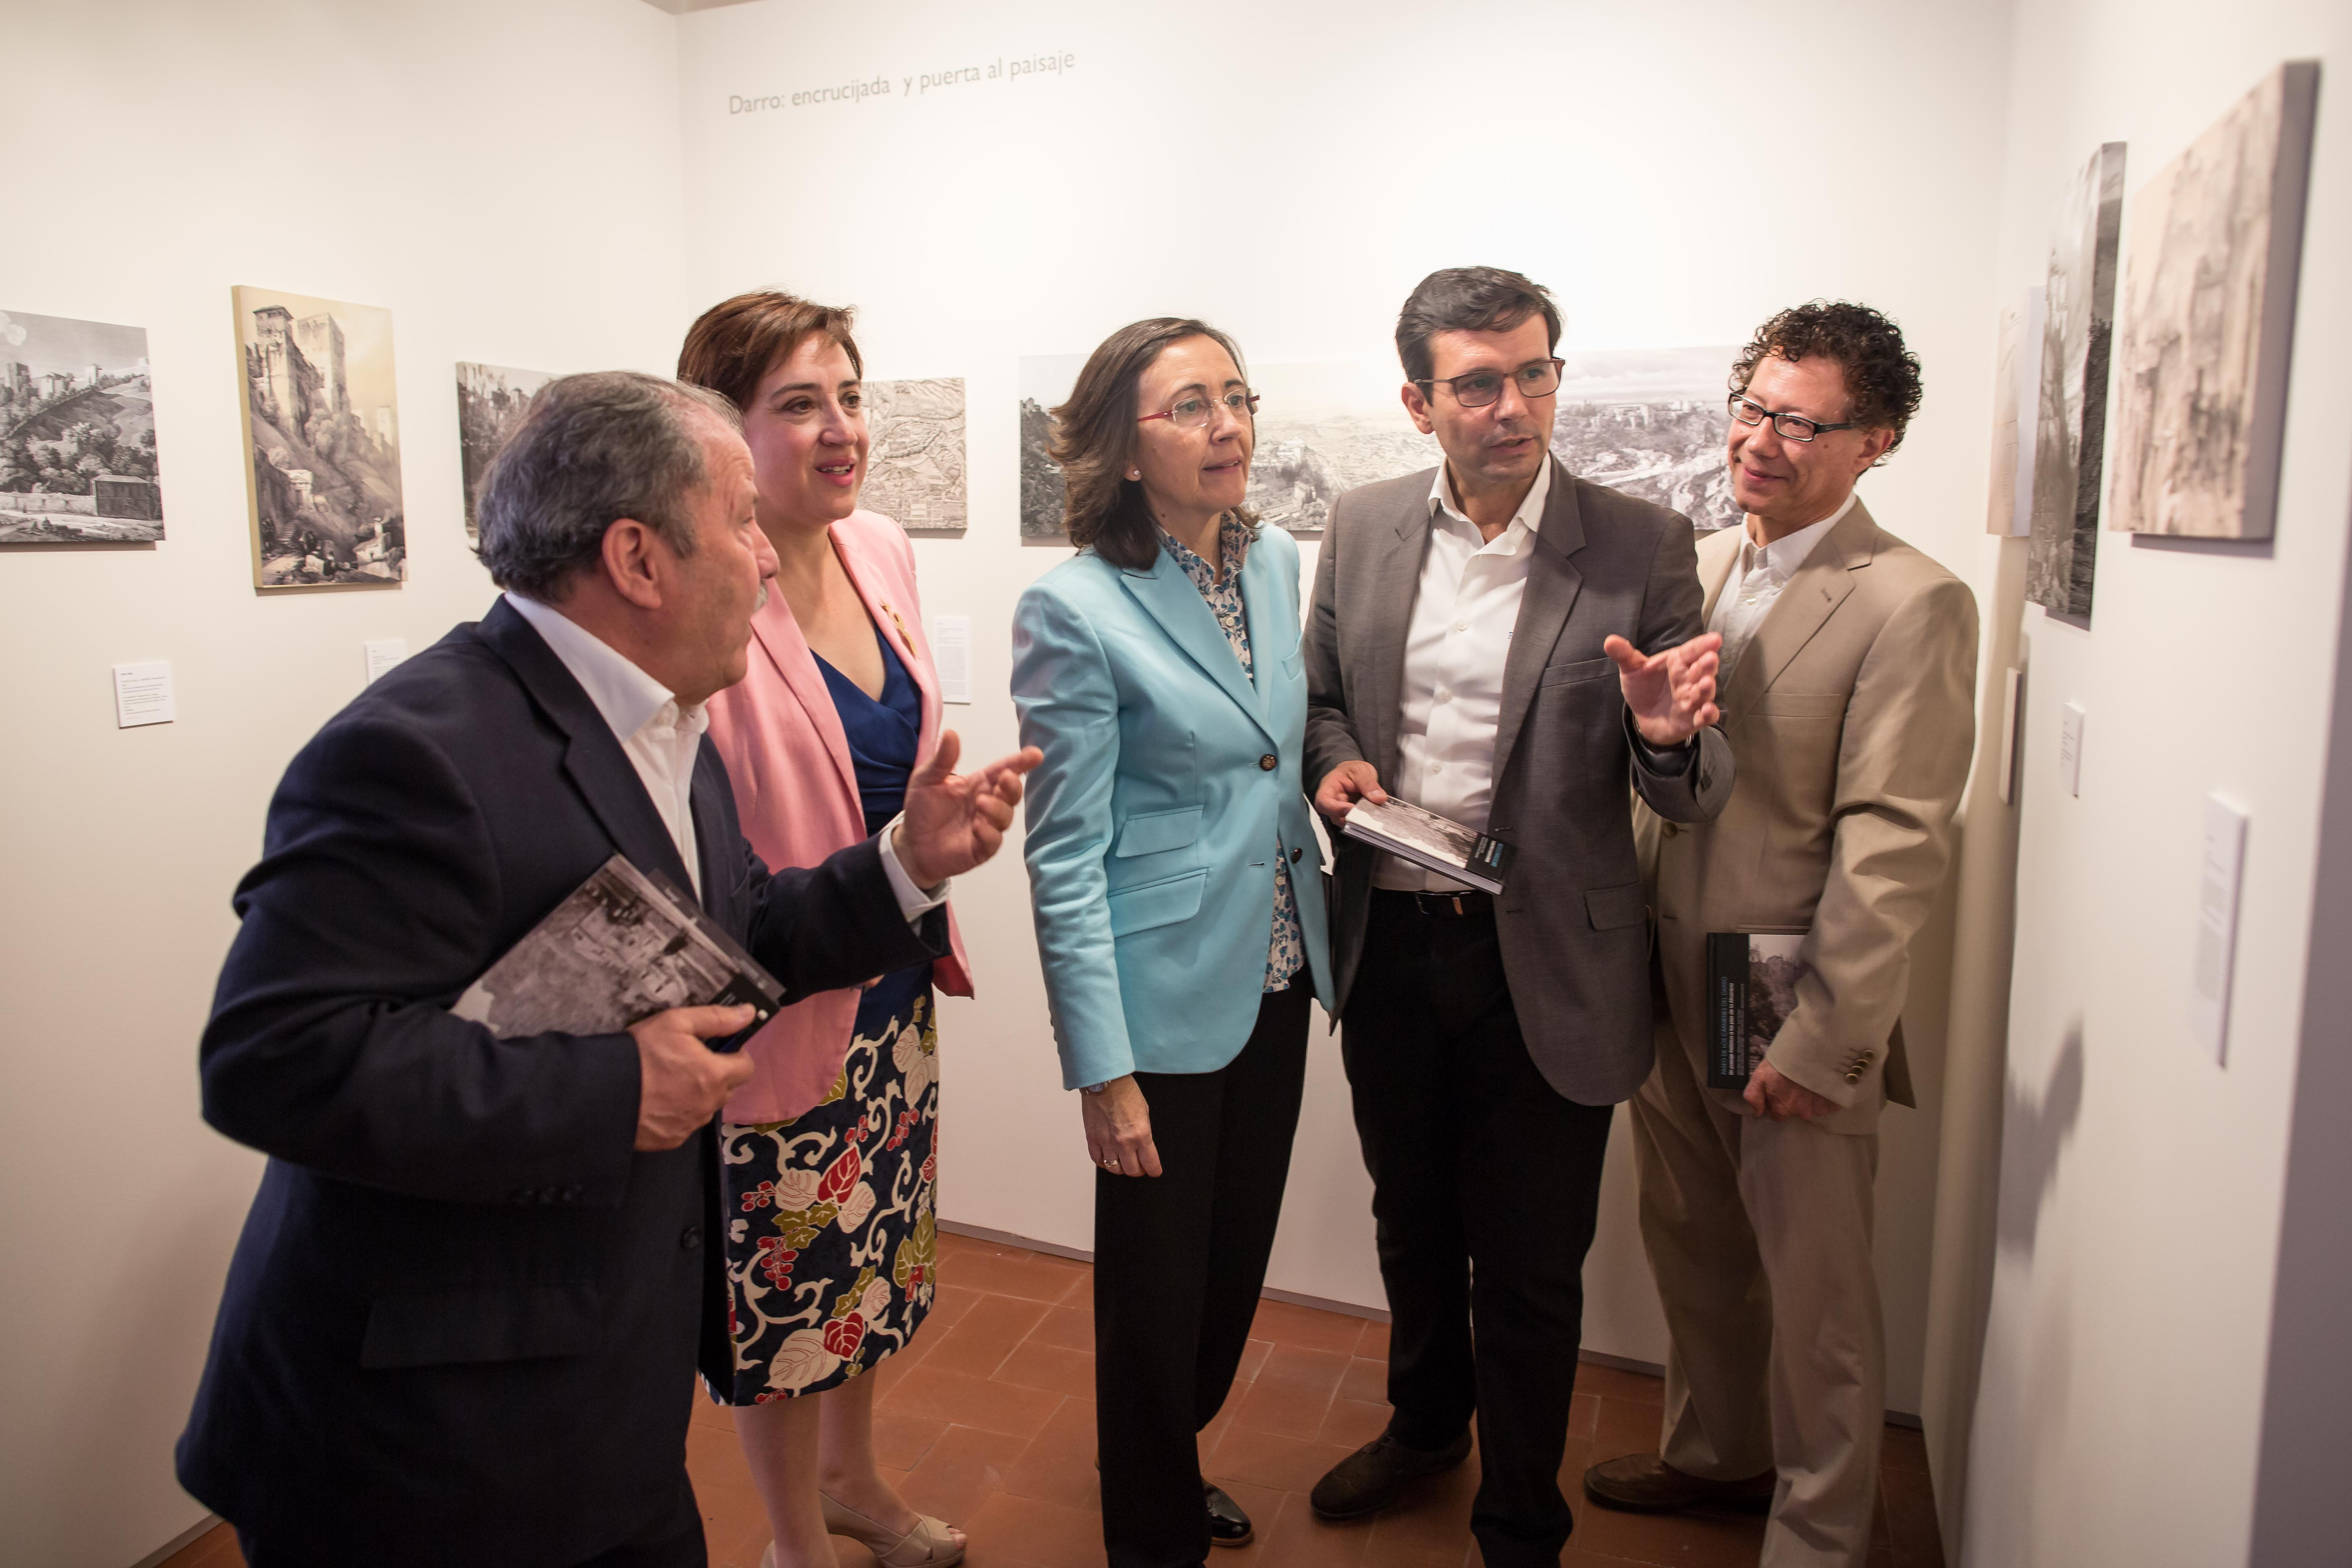 Aguilar presents the exhibition about the Path past the Great Houses on the River Darro (Paseo de los Carmenes del Dar-ro), which is being staged within the framework of the resto-ration of this path.